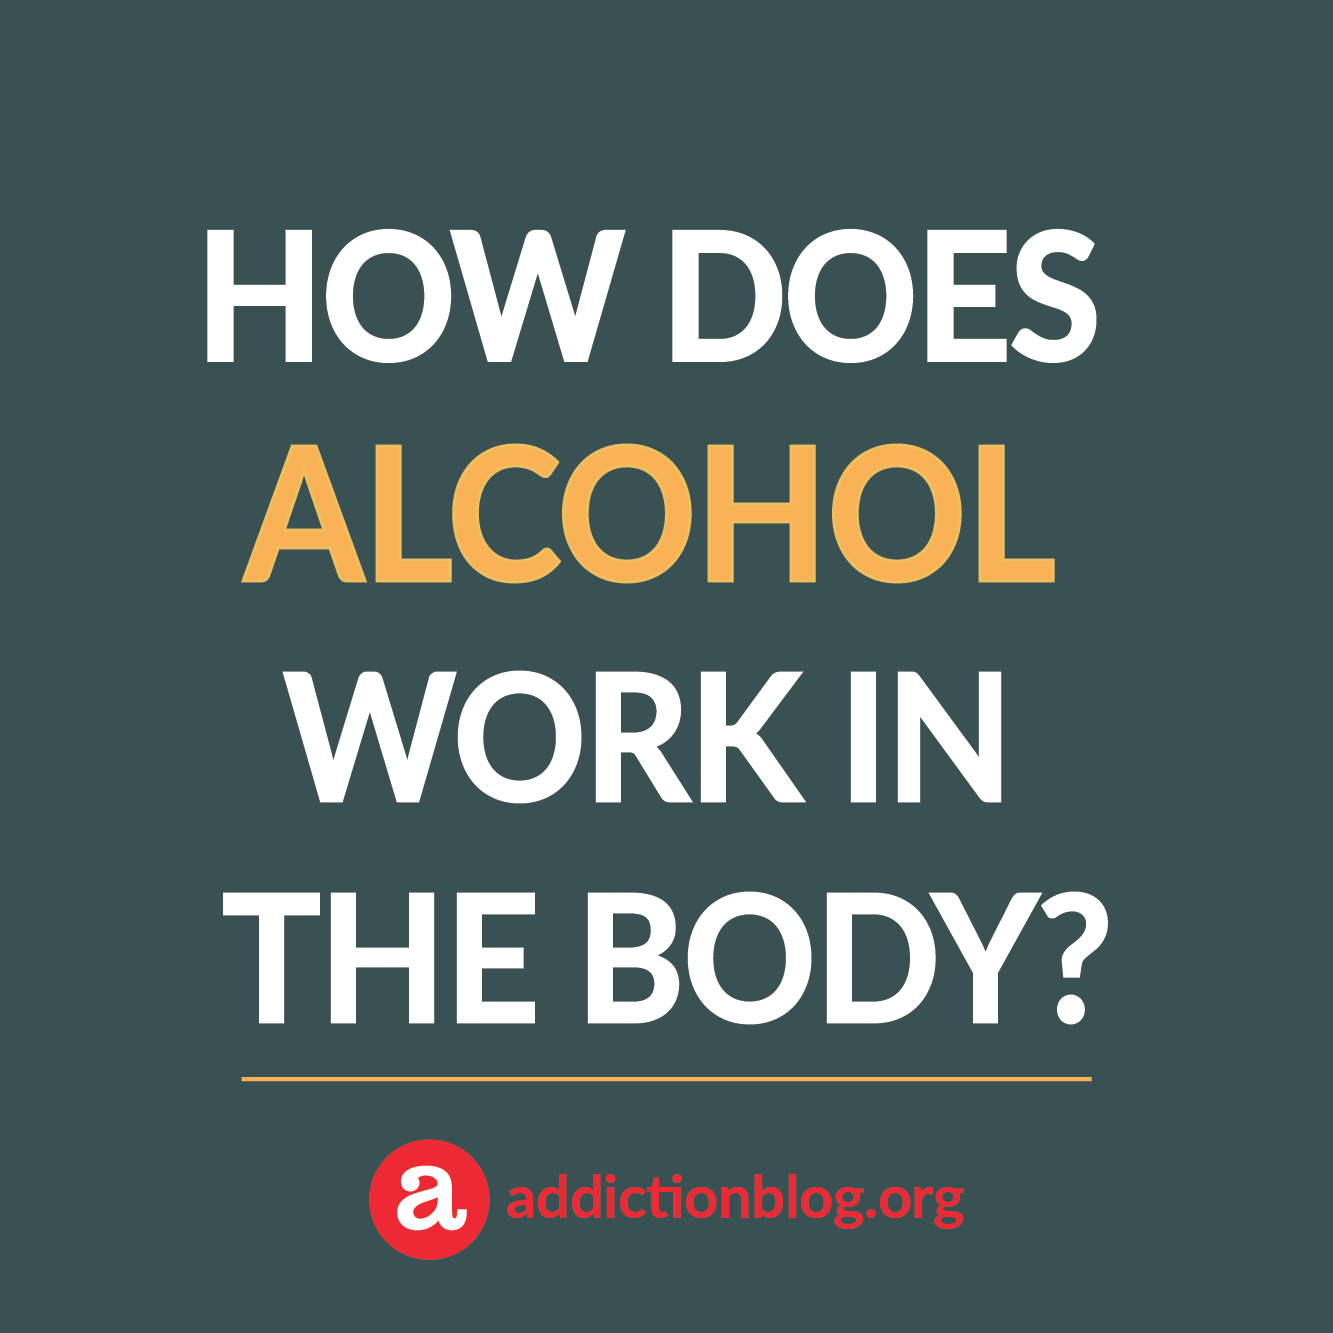 Alcohol in the body: How drinking affects the body and brain (INFOGRAPHIC)